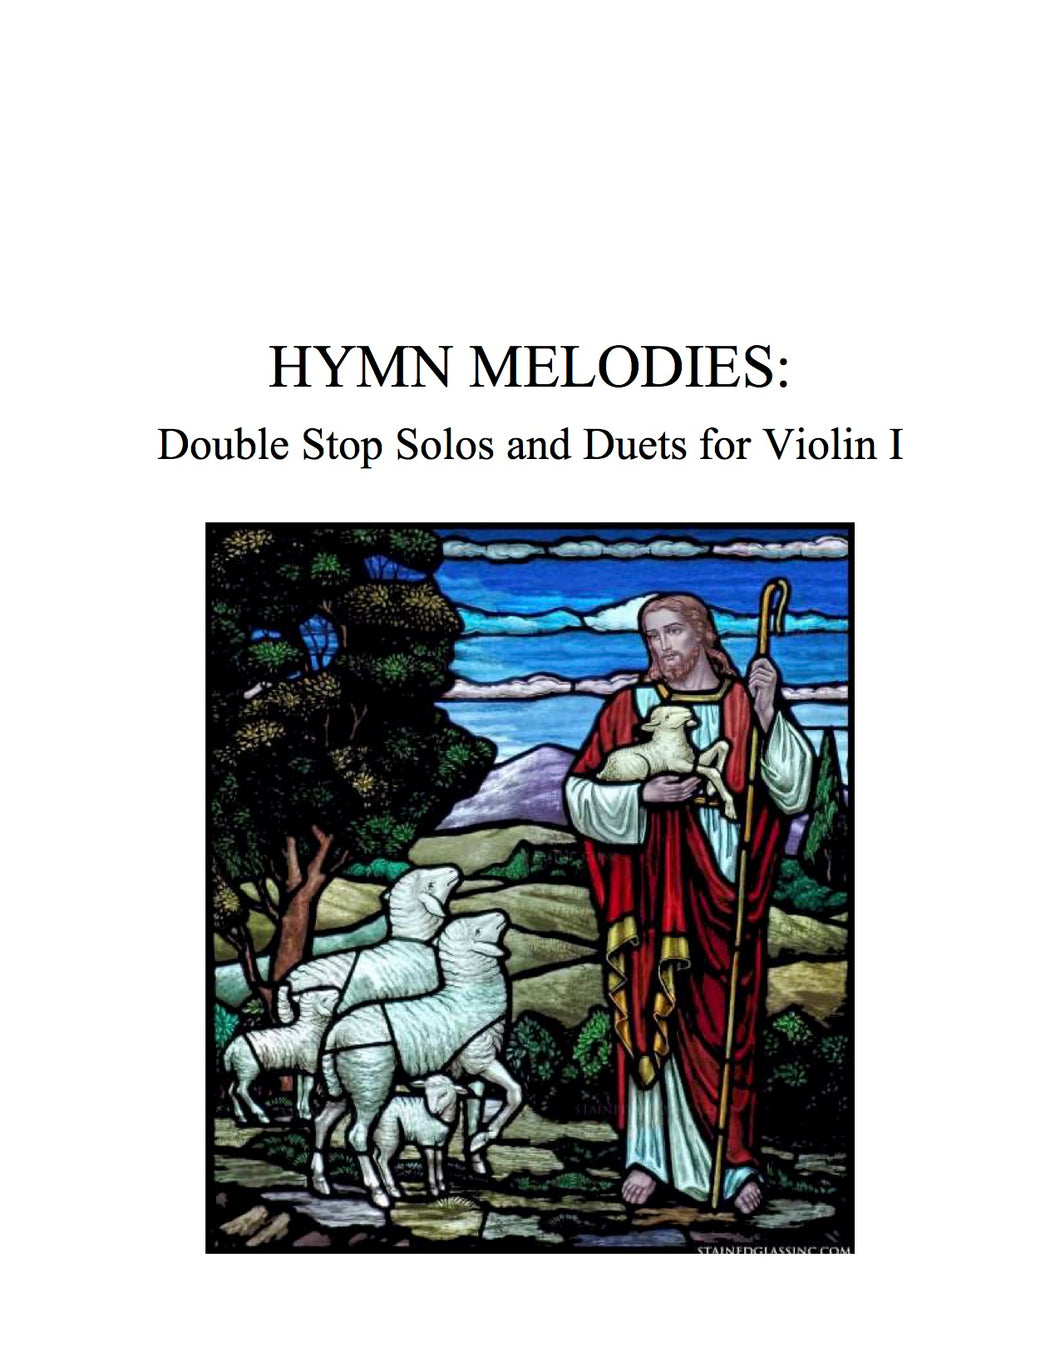 070 Hymn Melodies: Double Stop Solos and Duets For Violin, Volume I